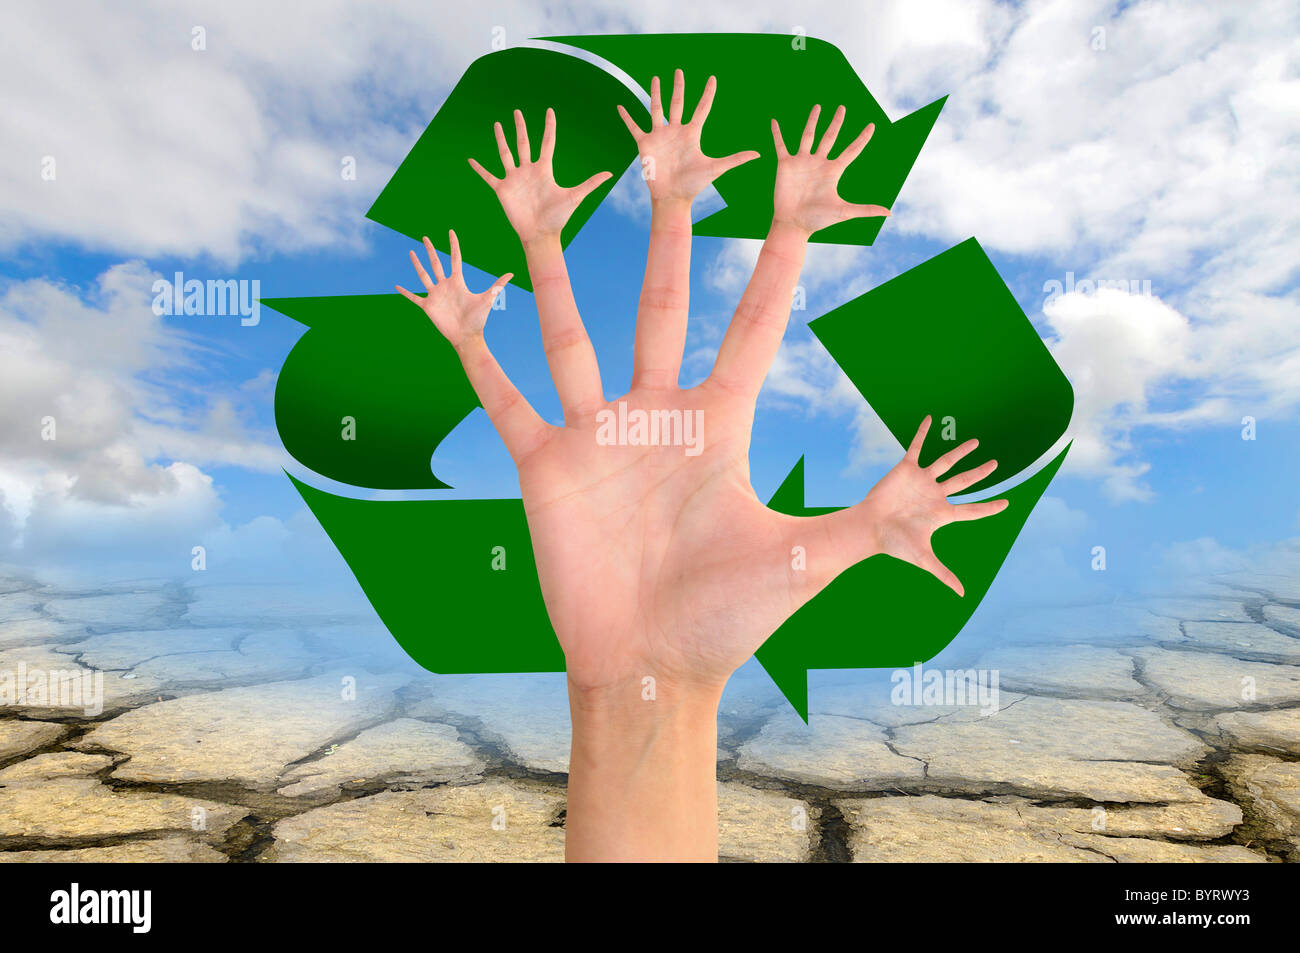 Hands planet earth tree symbol stock photos hands planet earth tree made of hands with recycle symbol over a dry soil stock image buycottarizona Choice Image